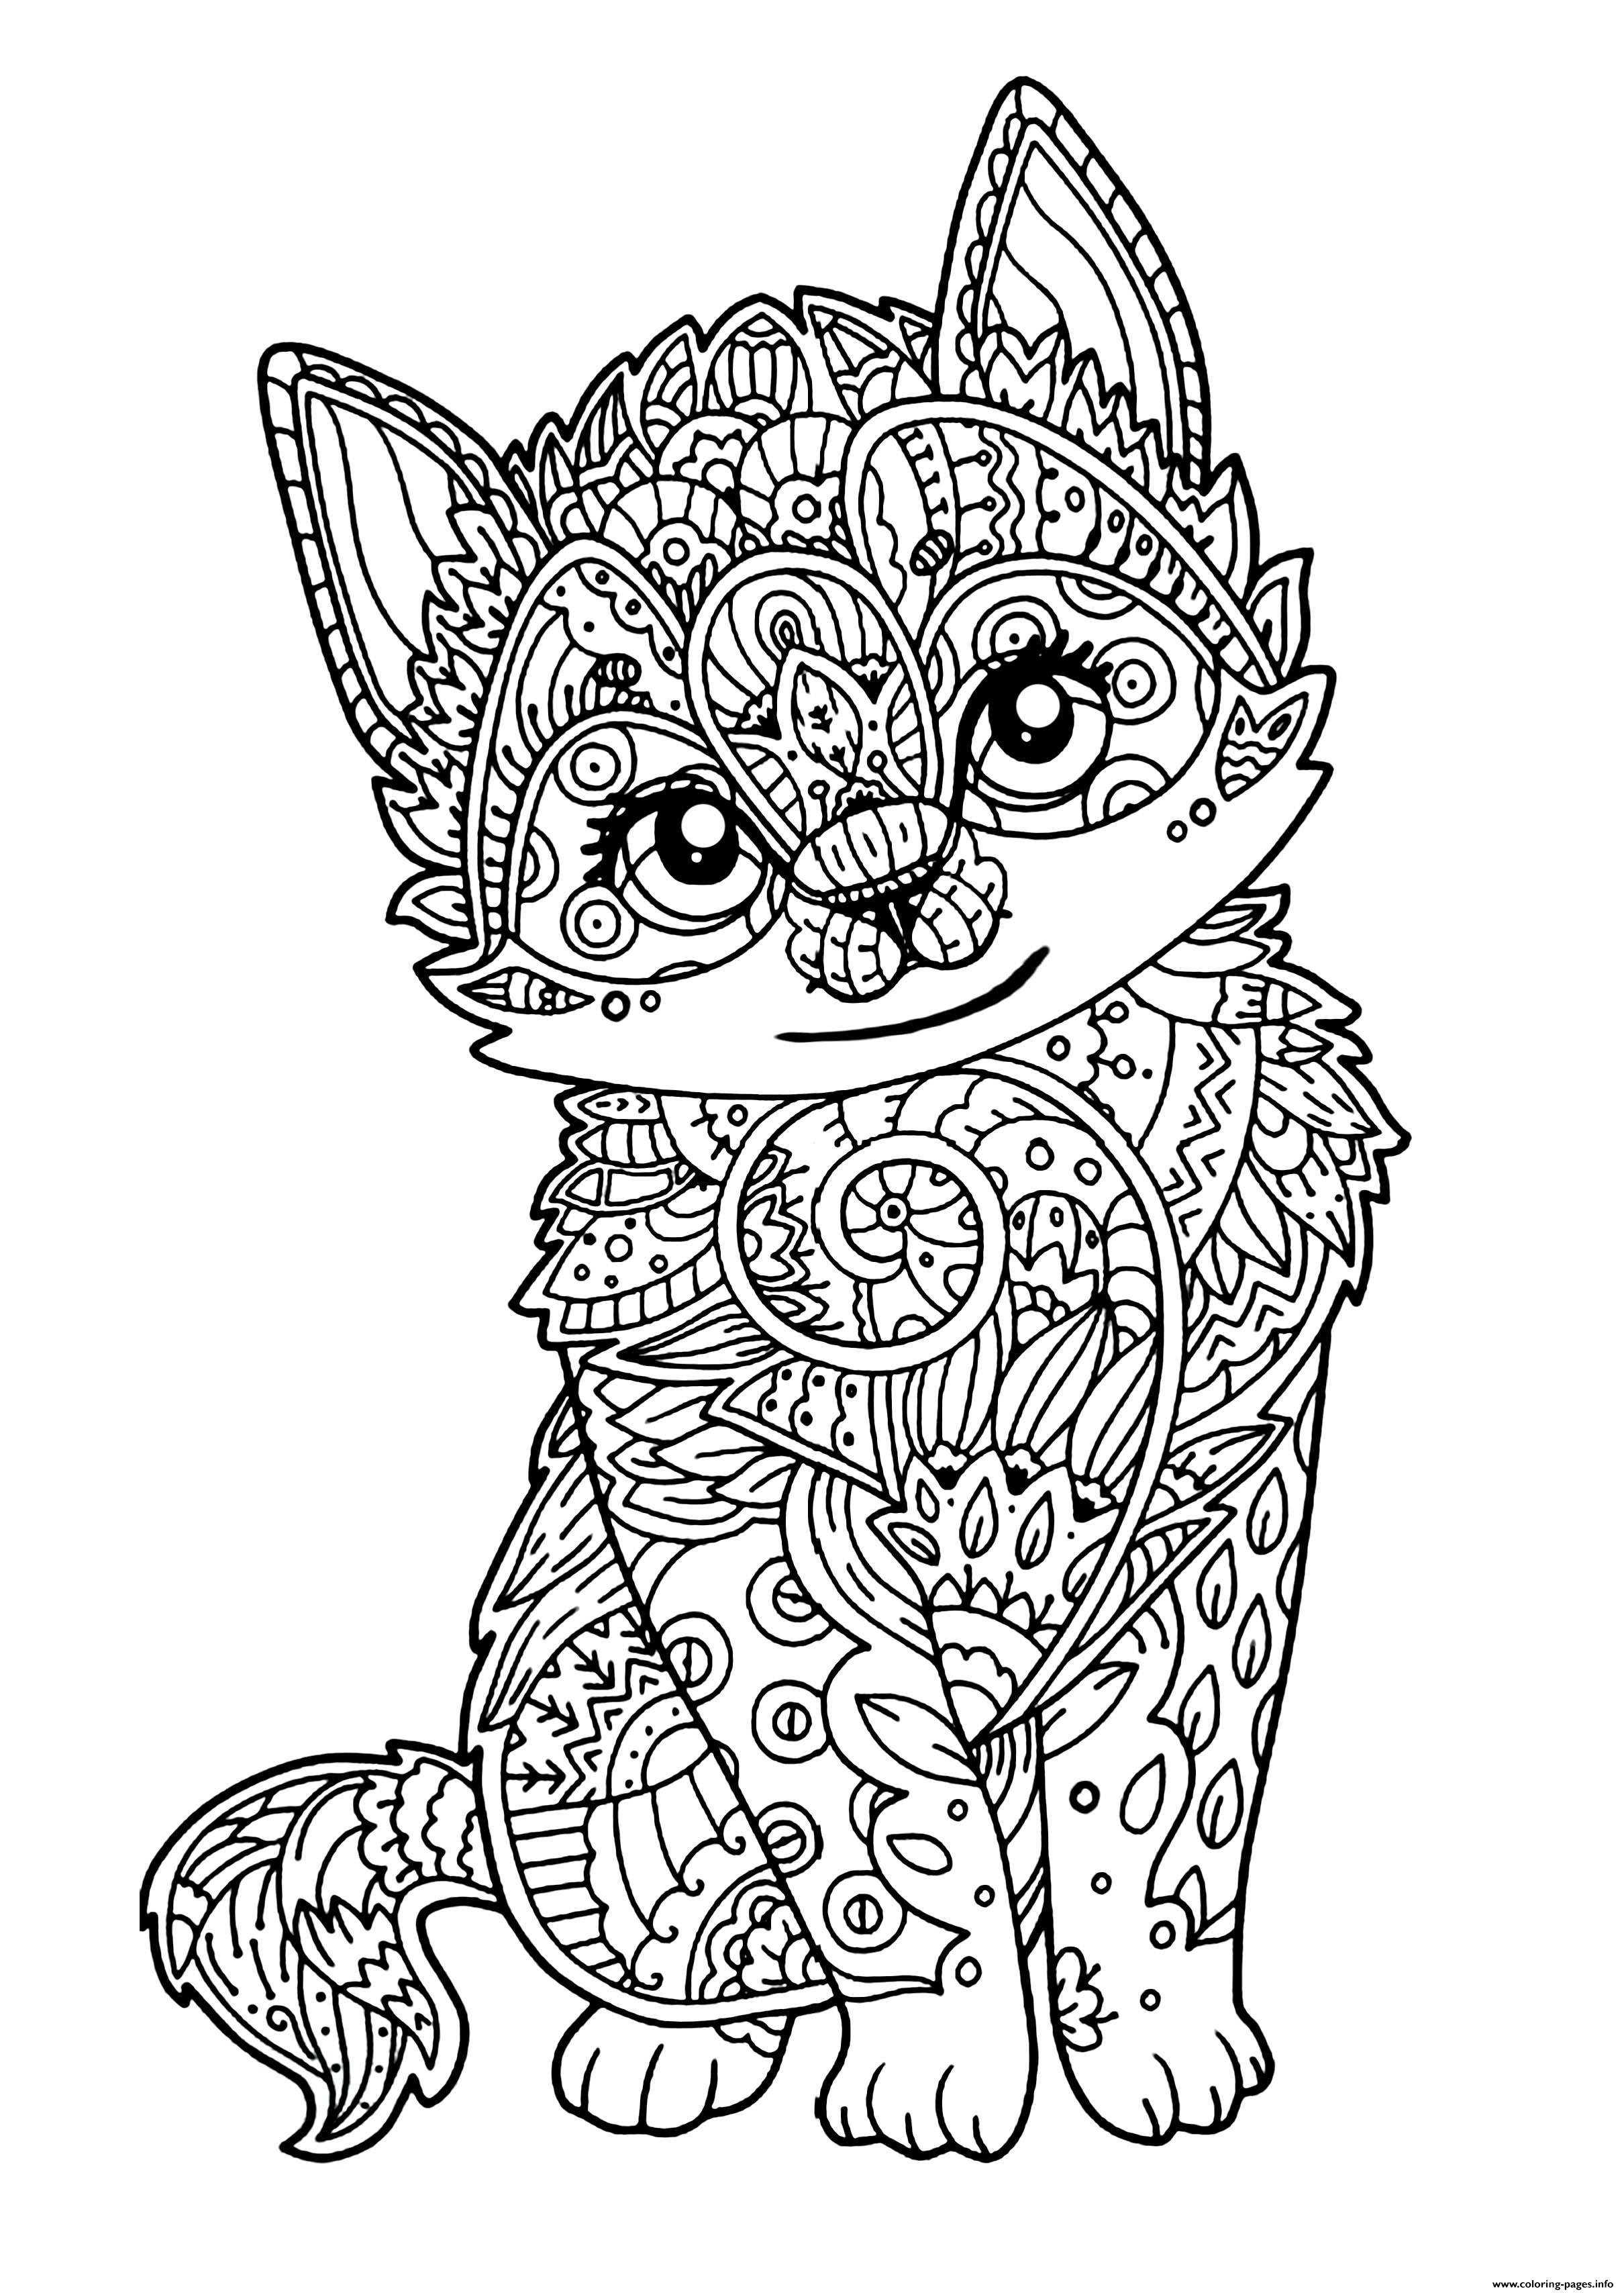 2420x3416 Printable Zentangle Coloring Pages With Sea Horse Zentangle